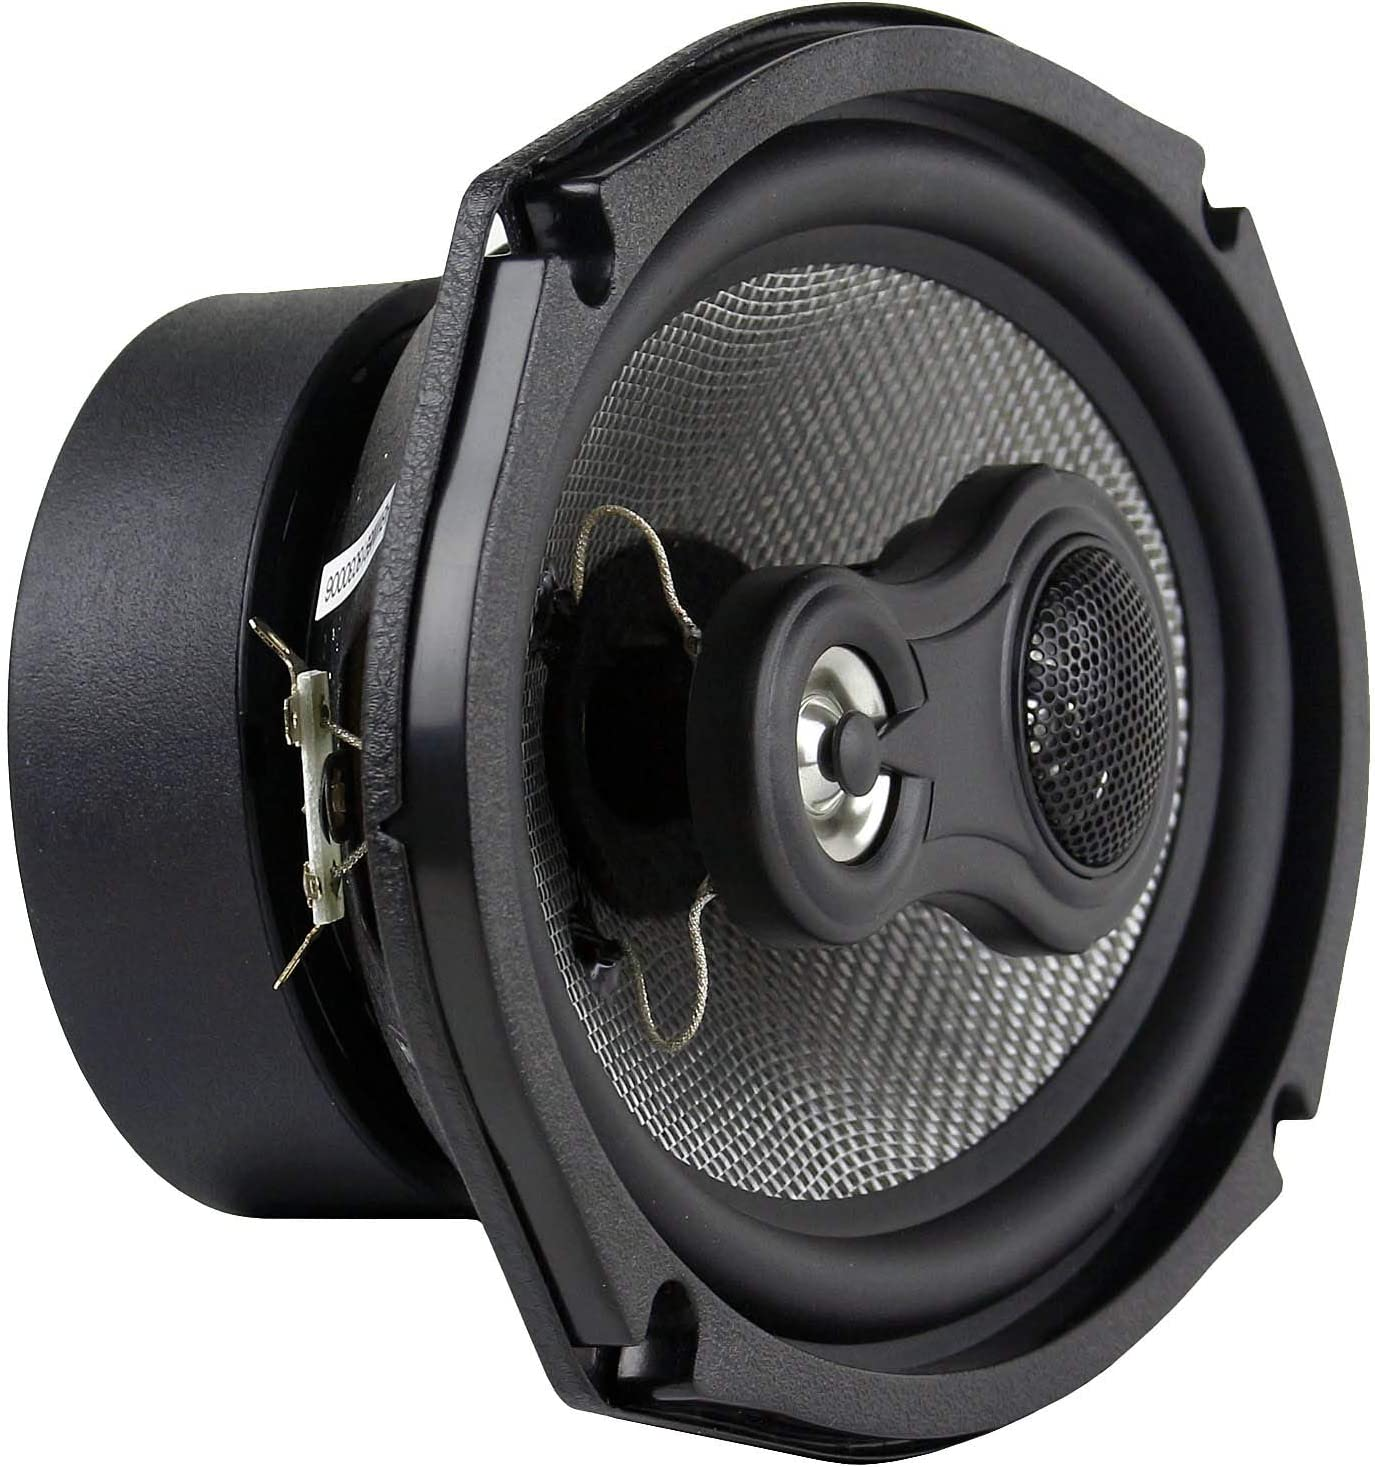 4 Pack 6x9 3-Way Coaxial Speakers 200W Max Grill American Bass Car Audio